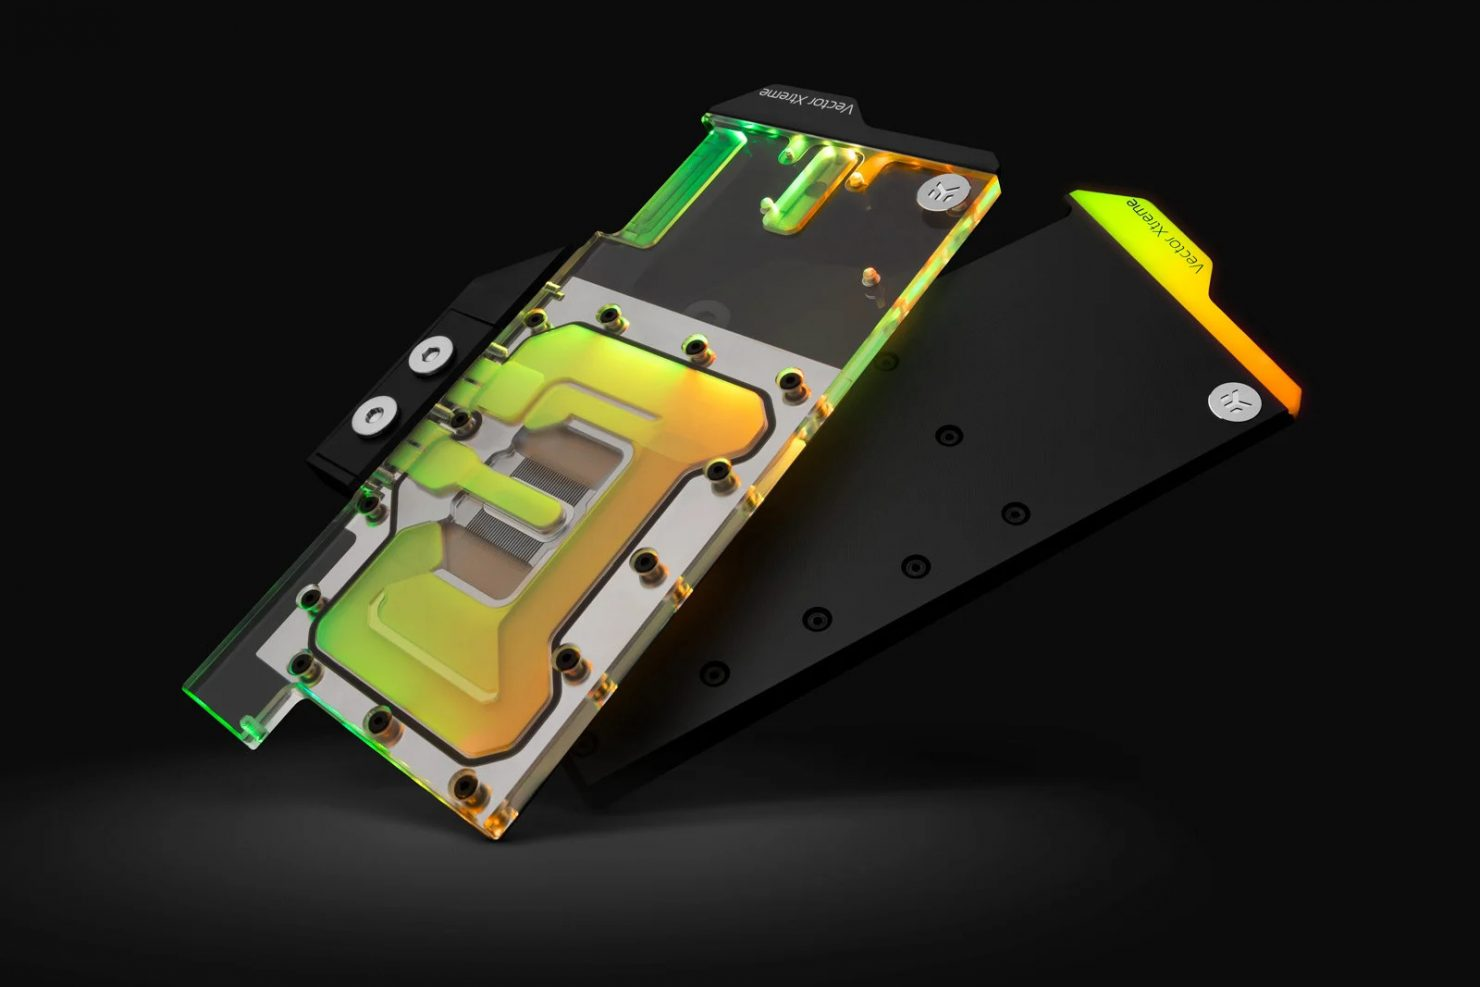 ekwb-launches-the-quantum-vector-xtreme-rtx-3080/3090-d-rgb-for-the-gigabyte-aorus-geforce-rtx-3080/3090-master-&-xtreme